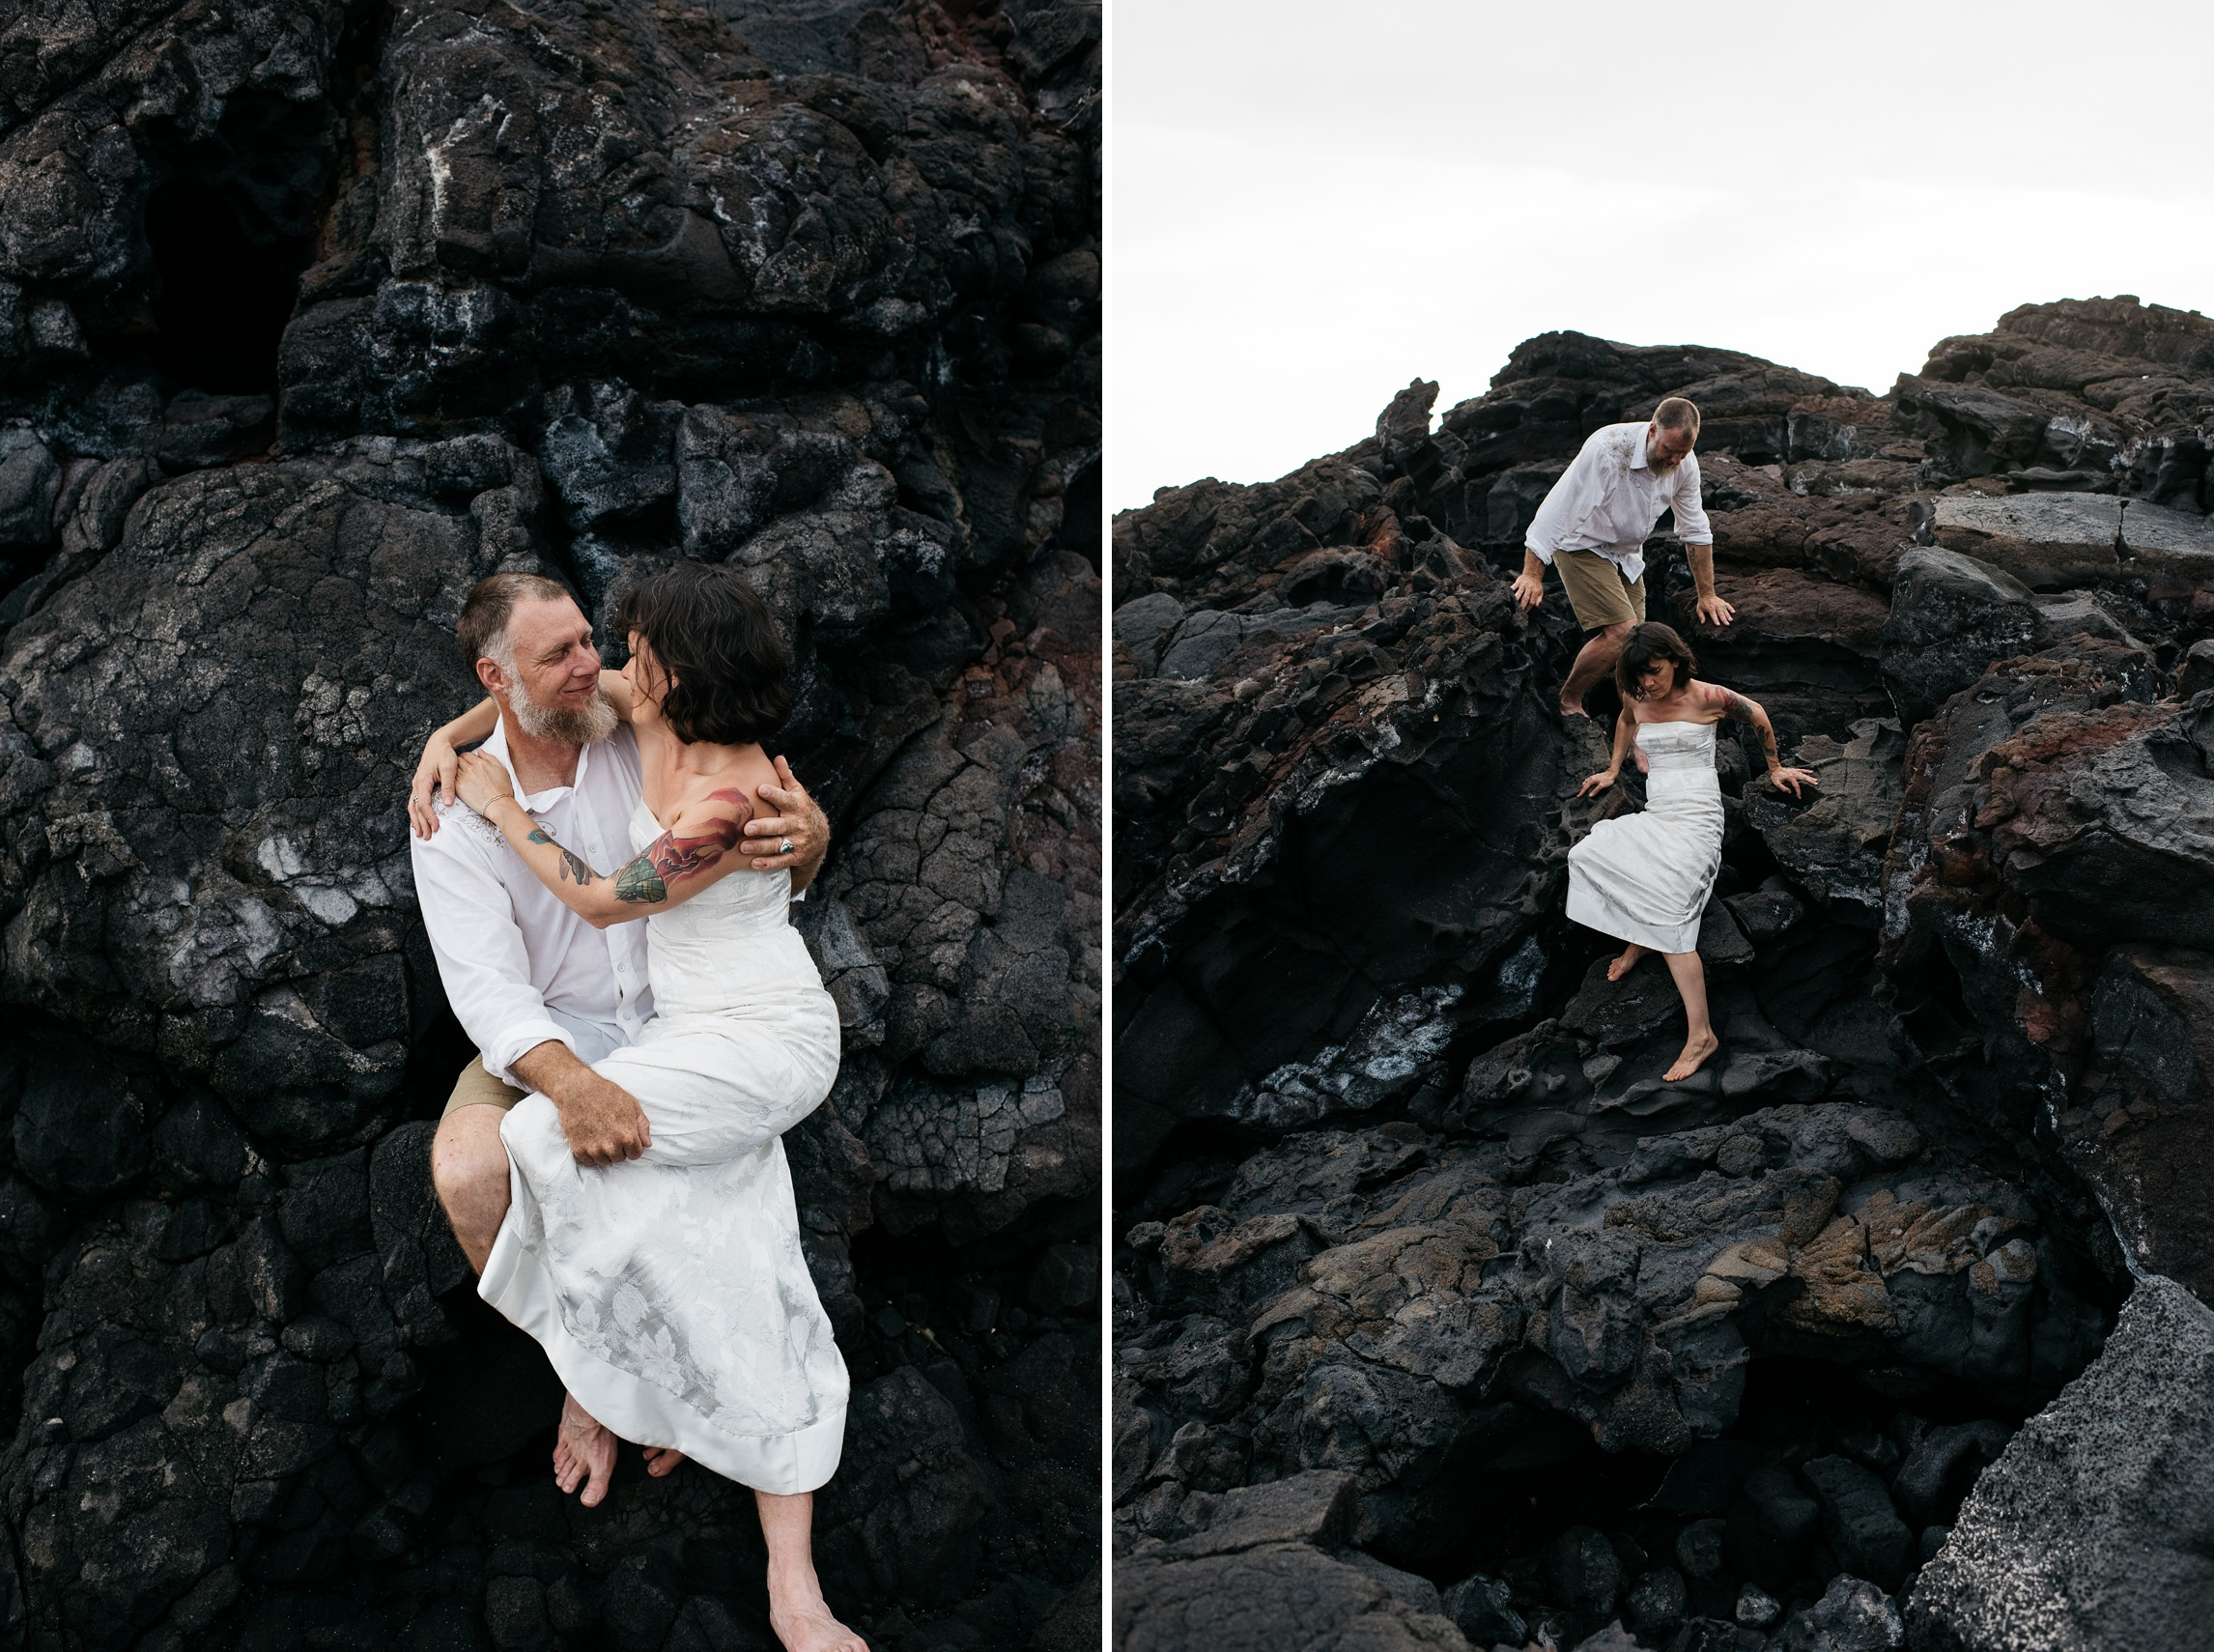 Dan and Maarit embrace on the lava beach near Naalehu, Hawaii. Anniversary portrait photography by Sonja Salzburg of Sonja K Photography.